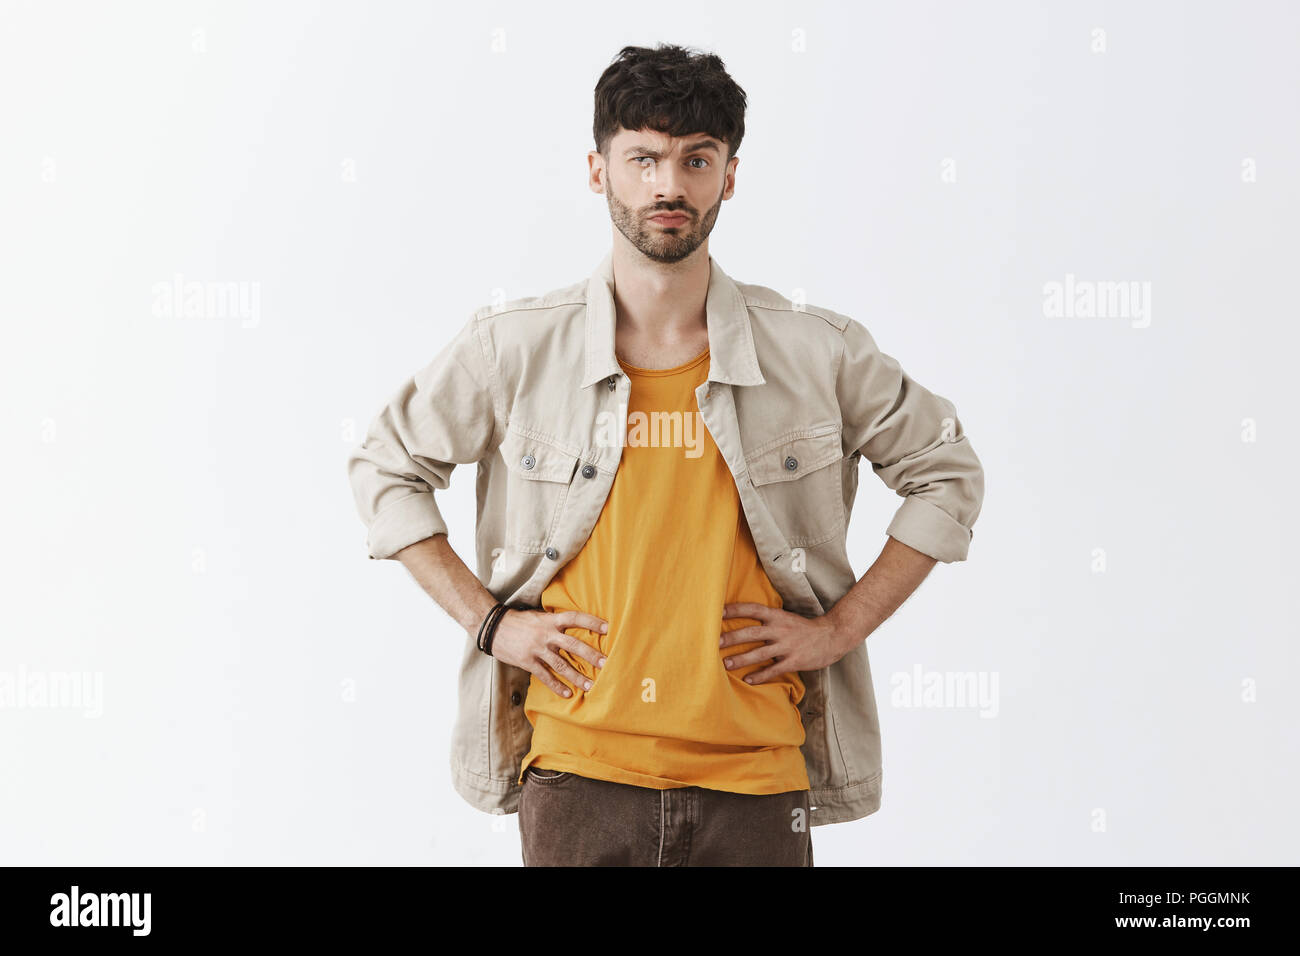 Portrait of intense doubtful and dissatisfied handsome caucasian bearded guy in trendy outfit holding hands on waist raising eyebrow in suspicious and disbelief pose over gray background - Stock Image